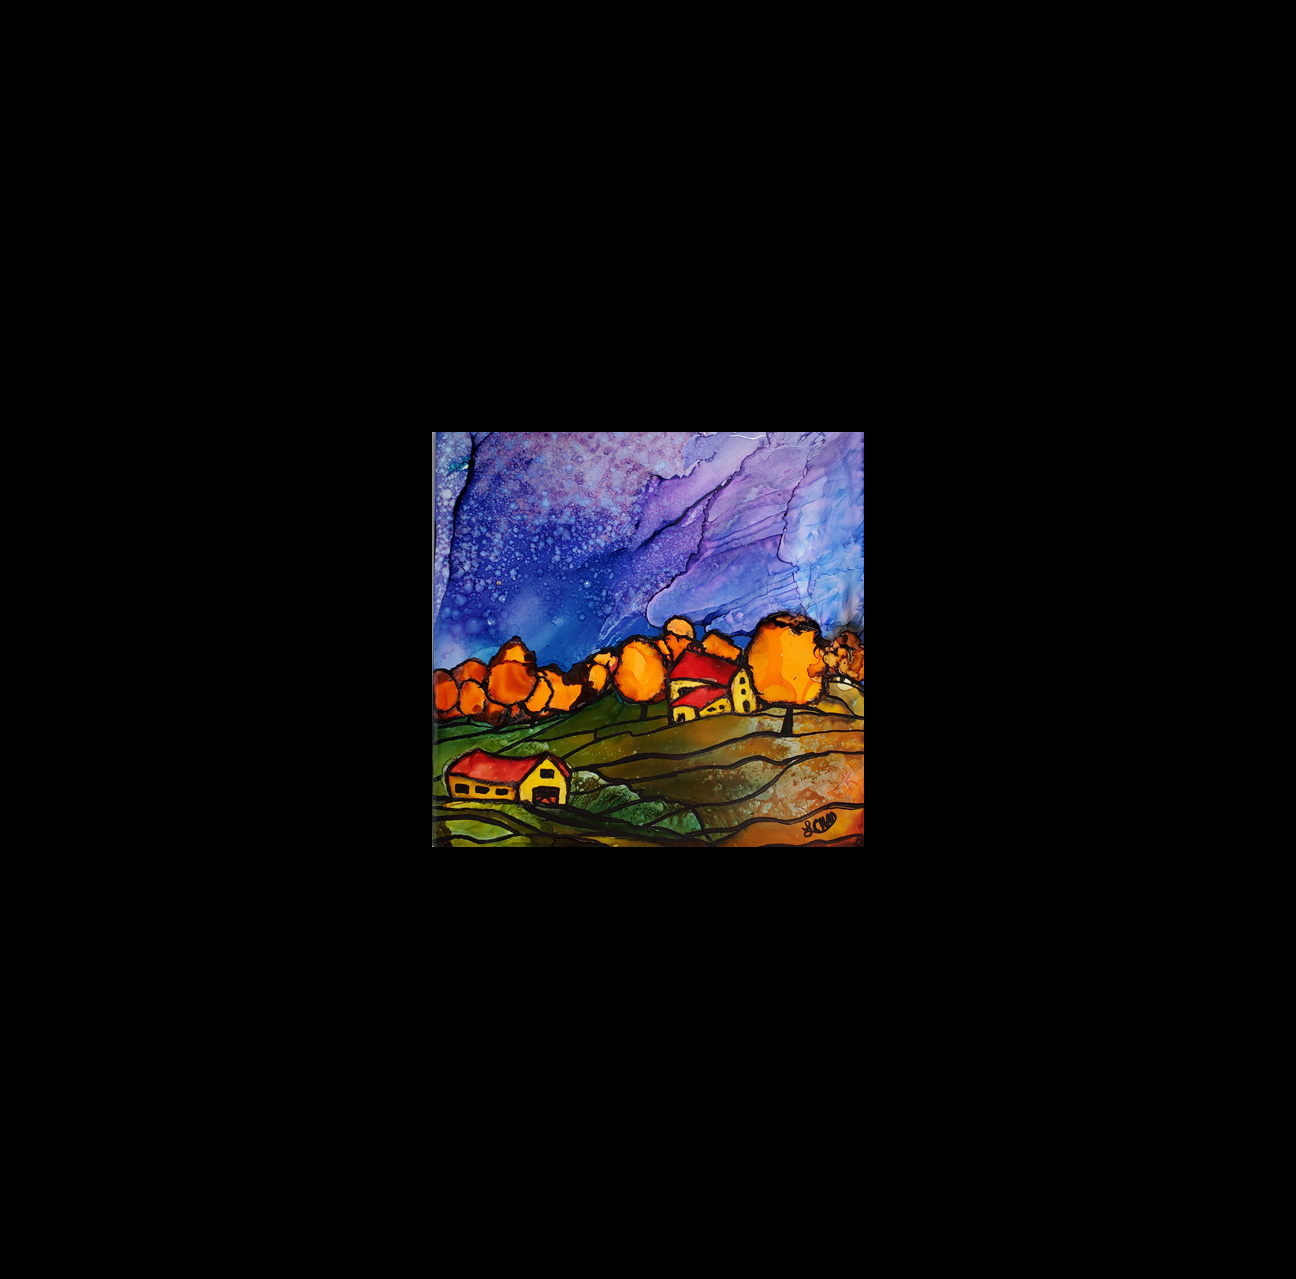 "2019-18 ""Autumn on the Farm"" Image: 6"" x 6"" Framed: 12"" x12"""" Alcohol Inks on Tile $135.00"